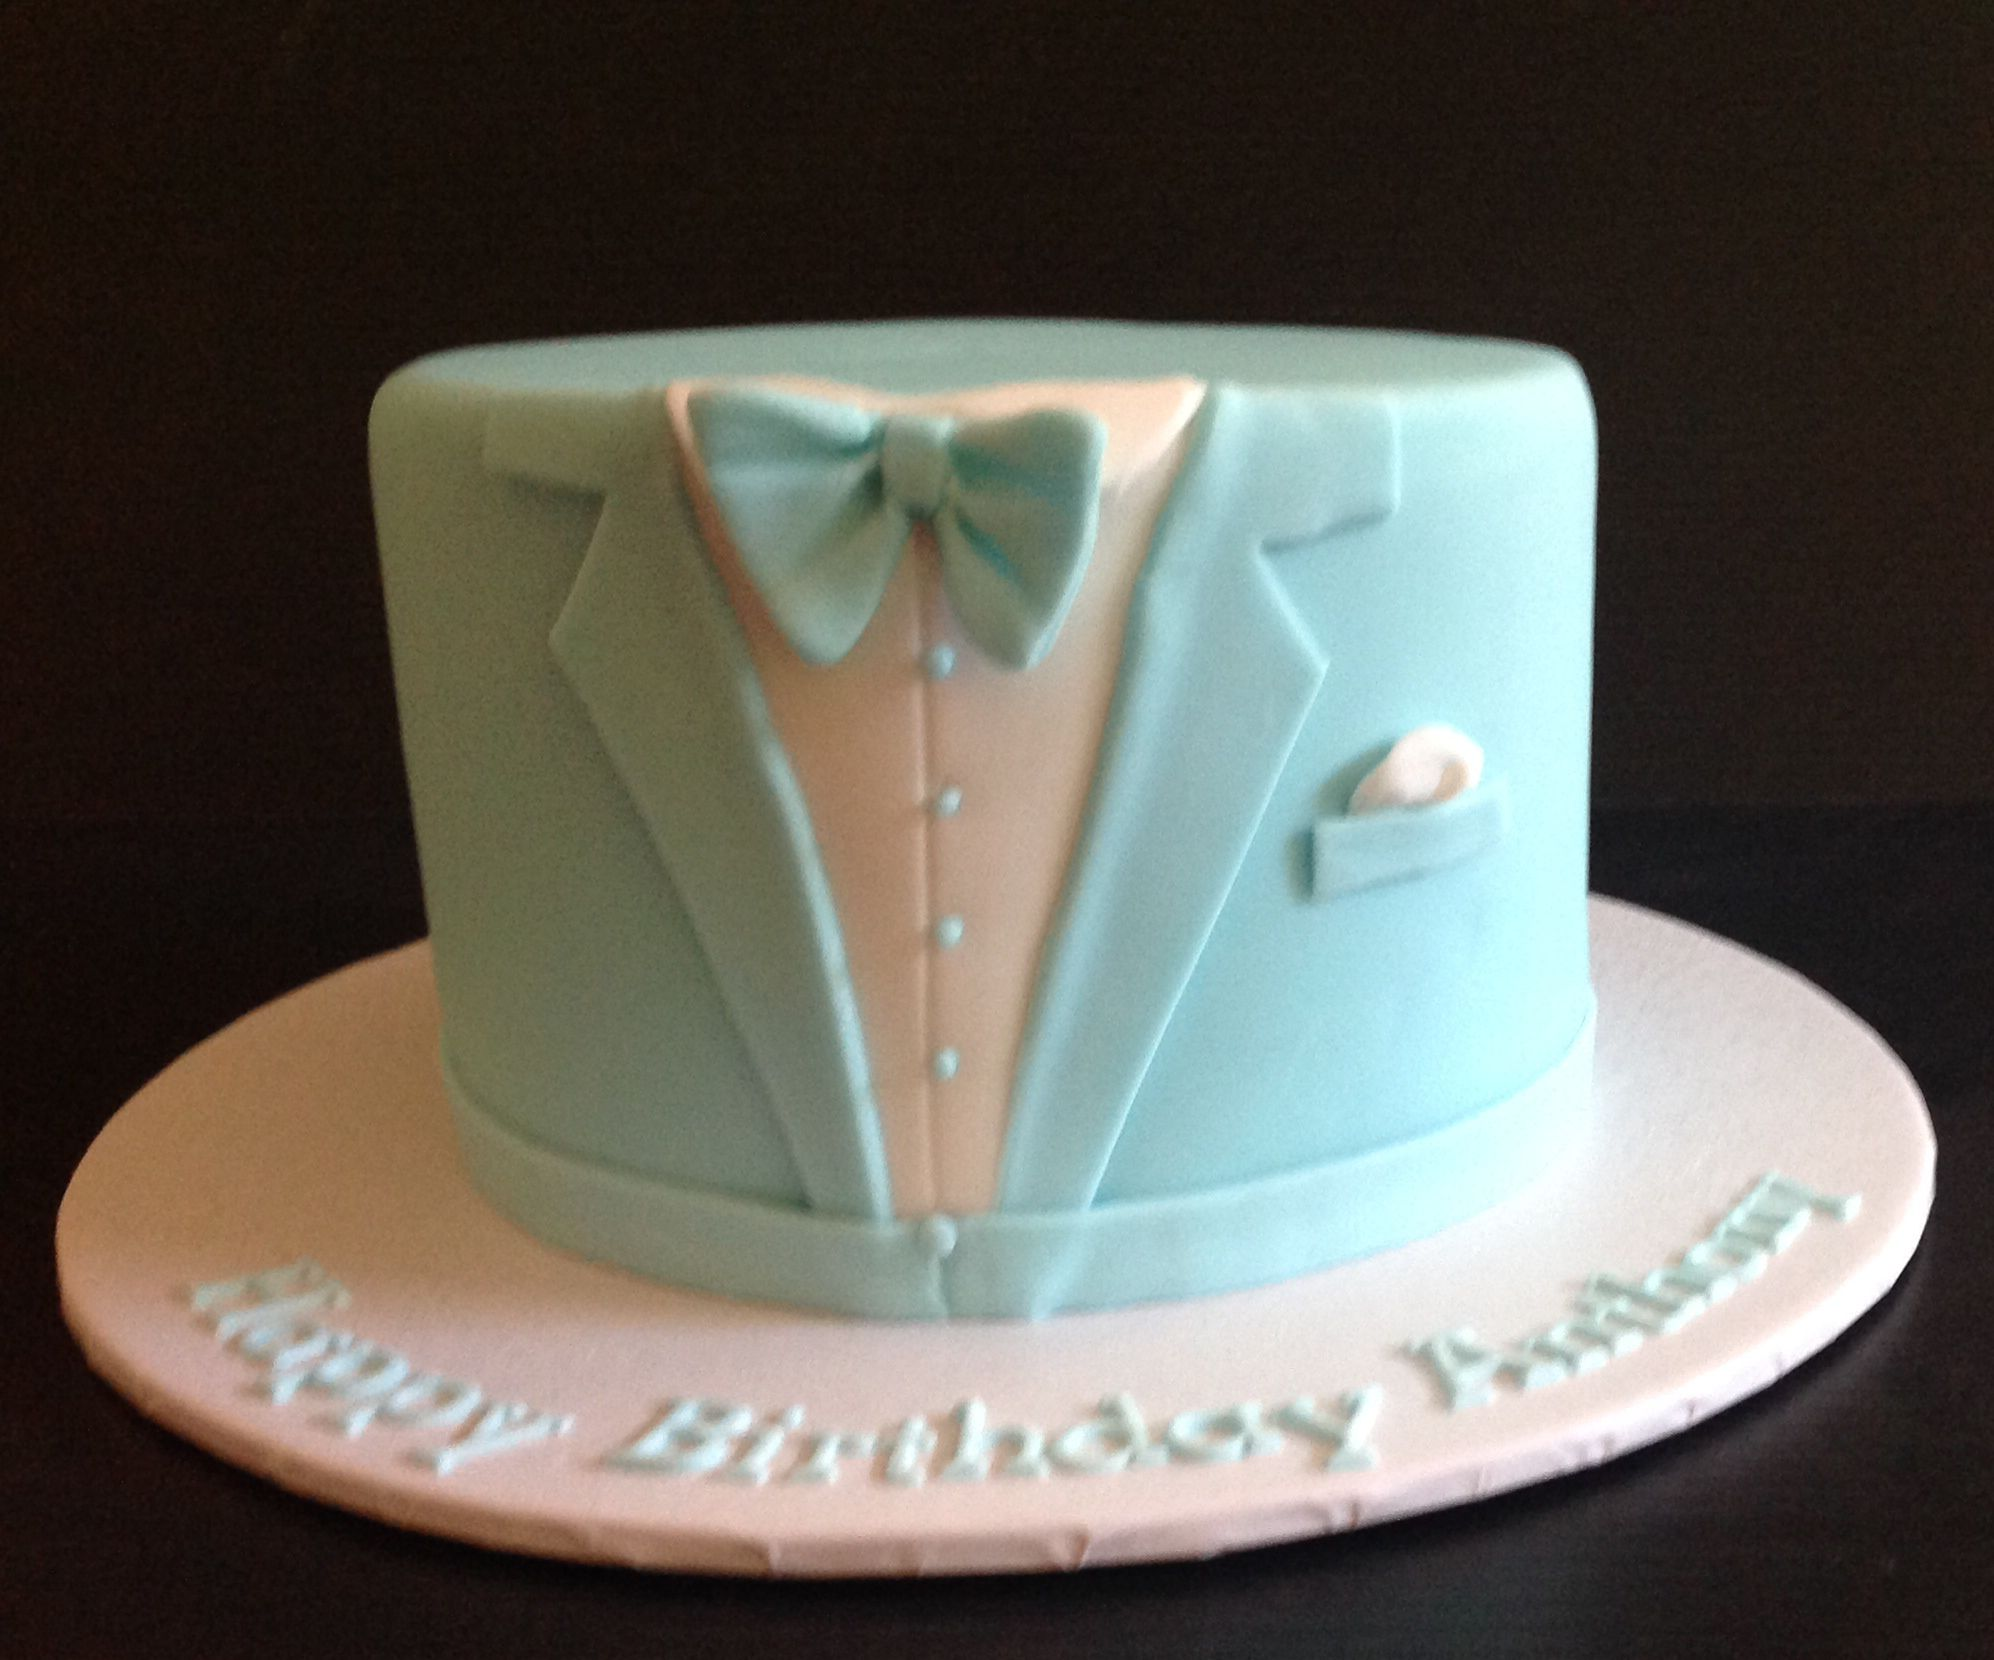 Pin by Sue Laughter on Baby shower | Pinterest | Tuxedo cake